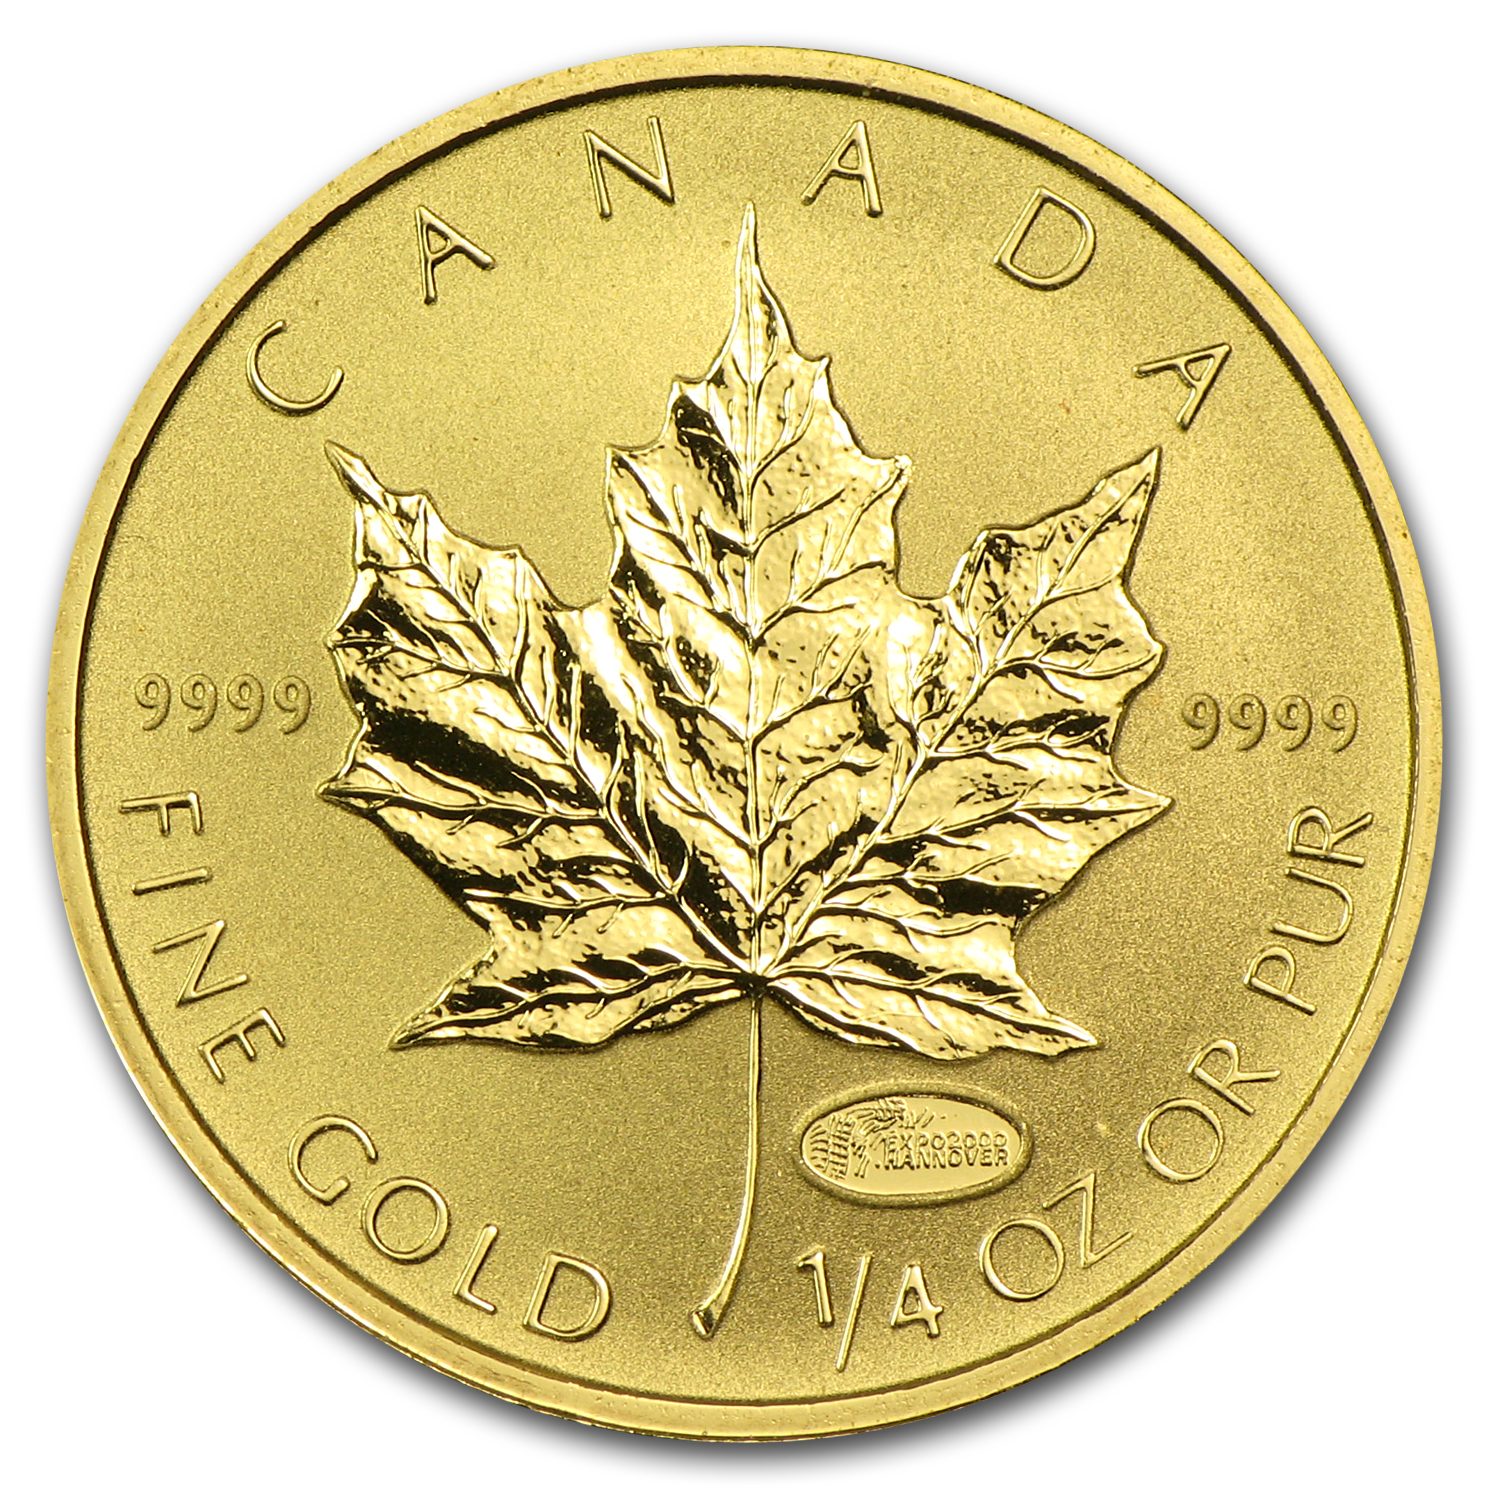 2000 1/4 oz Gold Canadian Maple Leaf BU (Expo Hannover Privy)